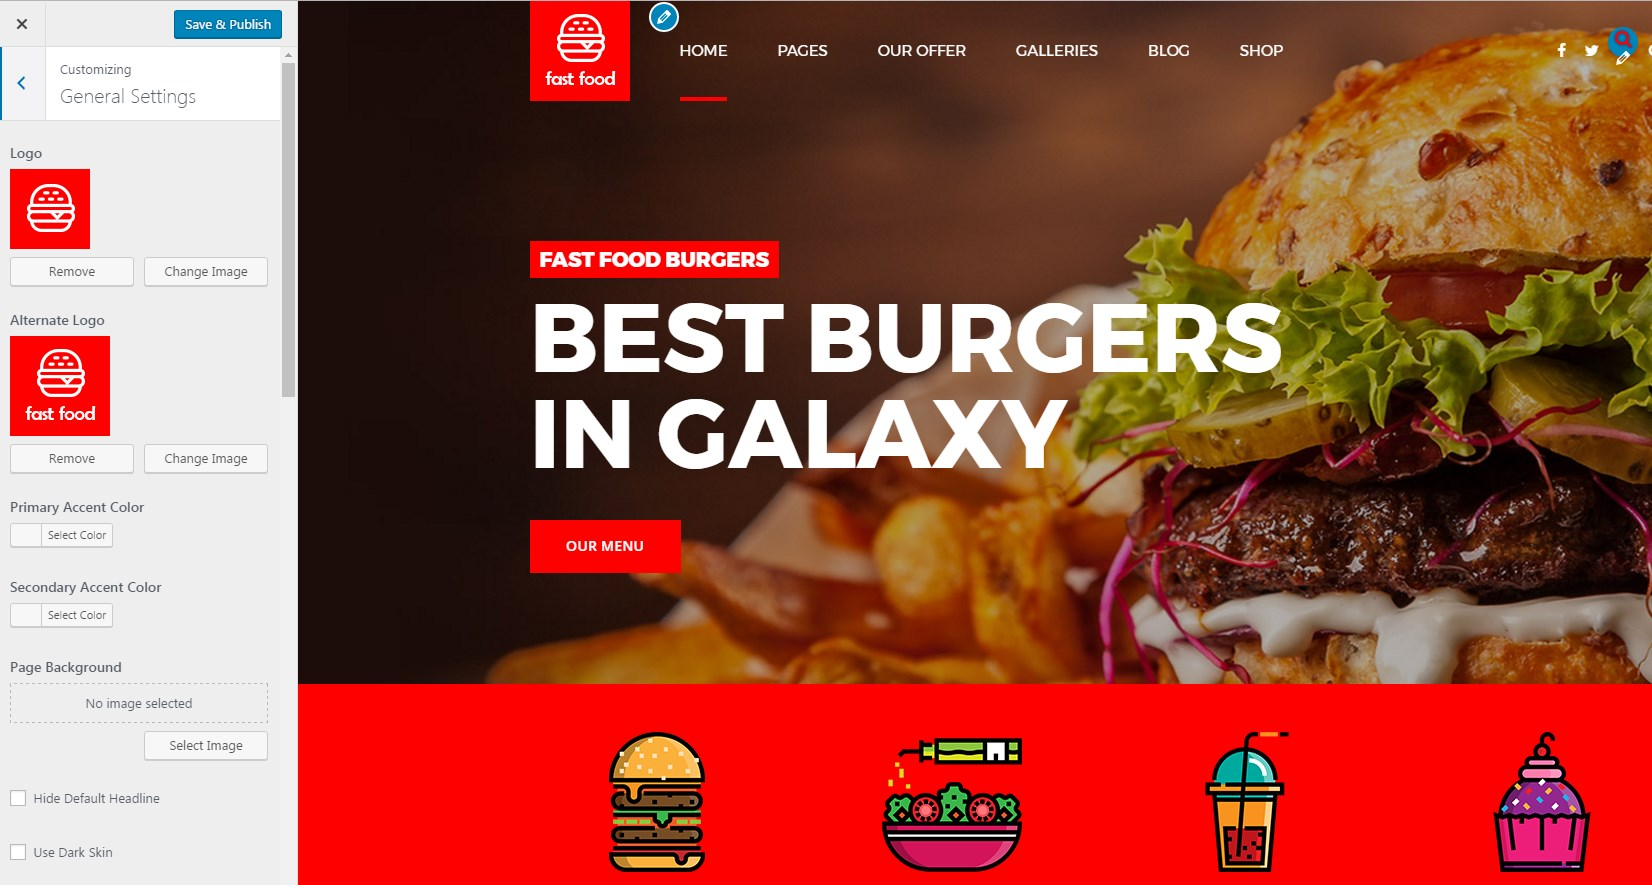 http://documentation.bold-themes.com/fast-food/wp-content/uploads/sites/13/2016/07/11-1.jpg